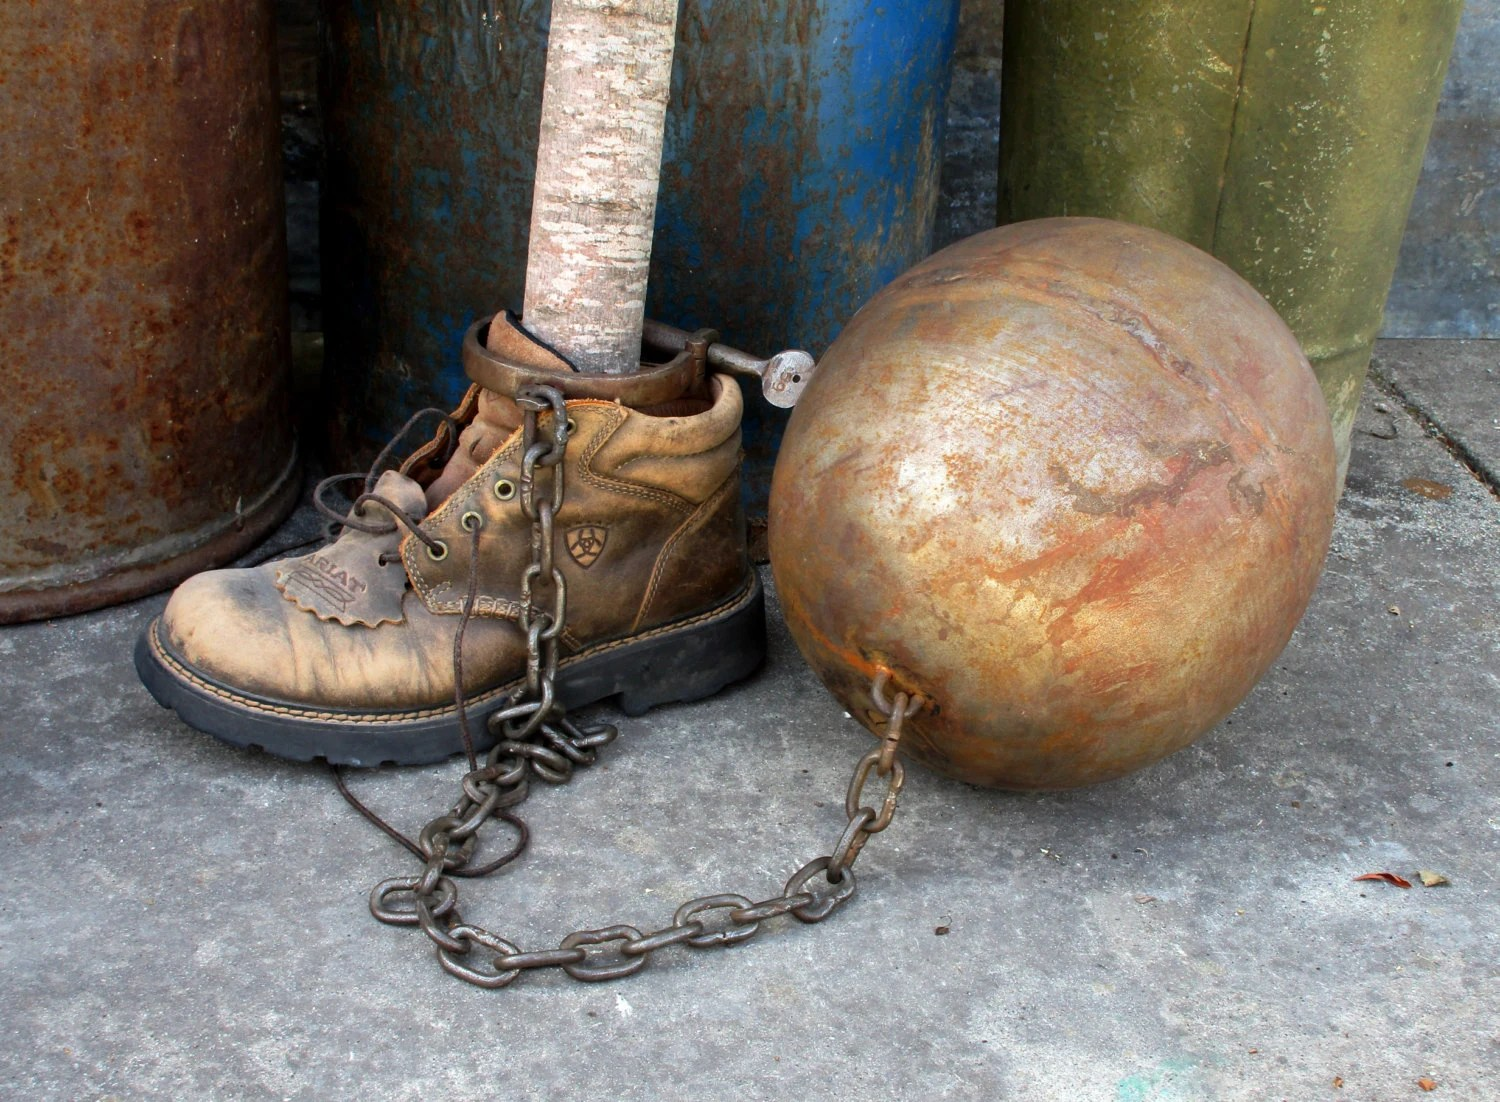 Vintage Prison Ball And Chain